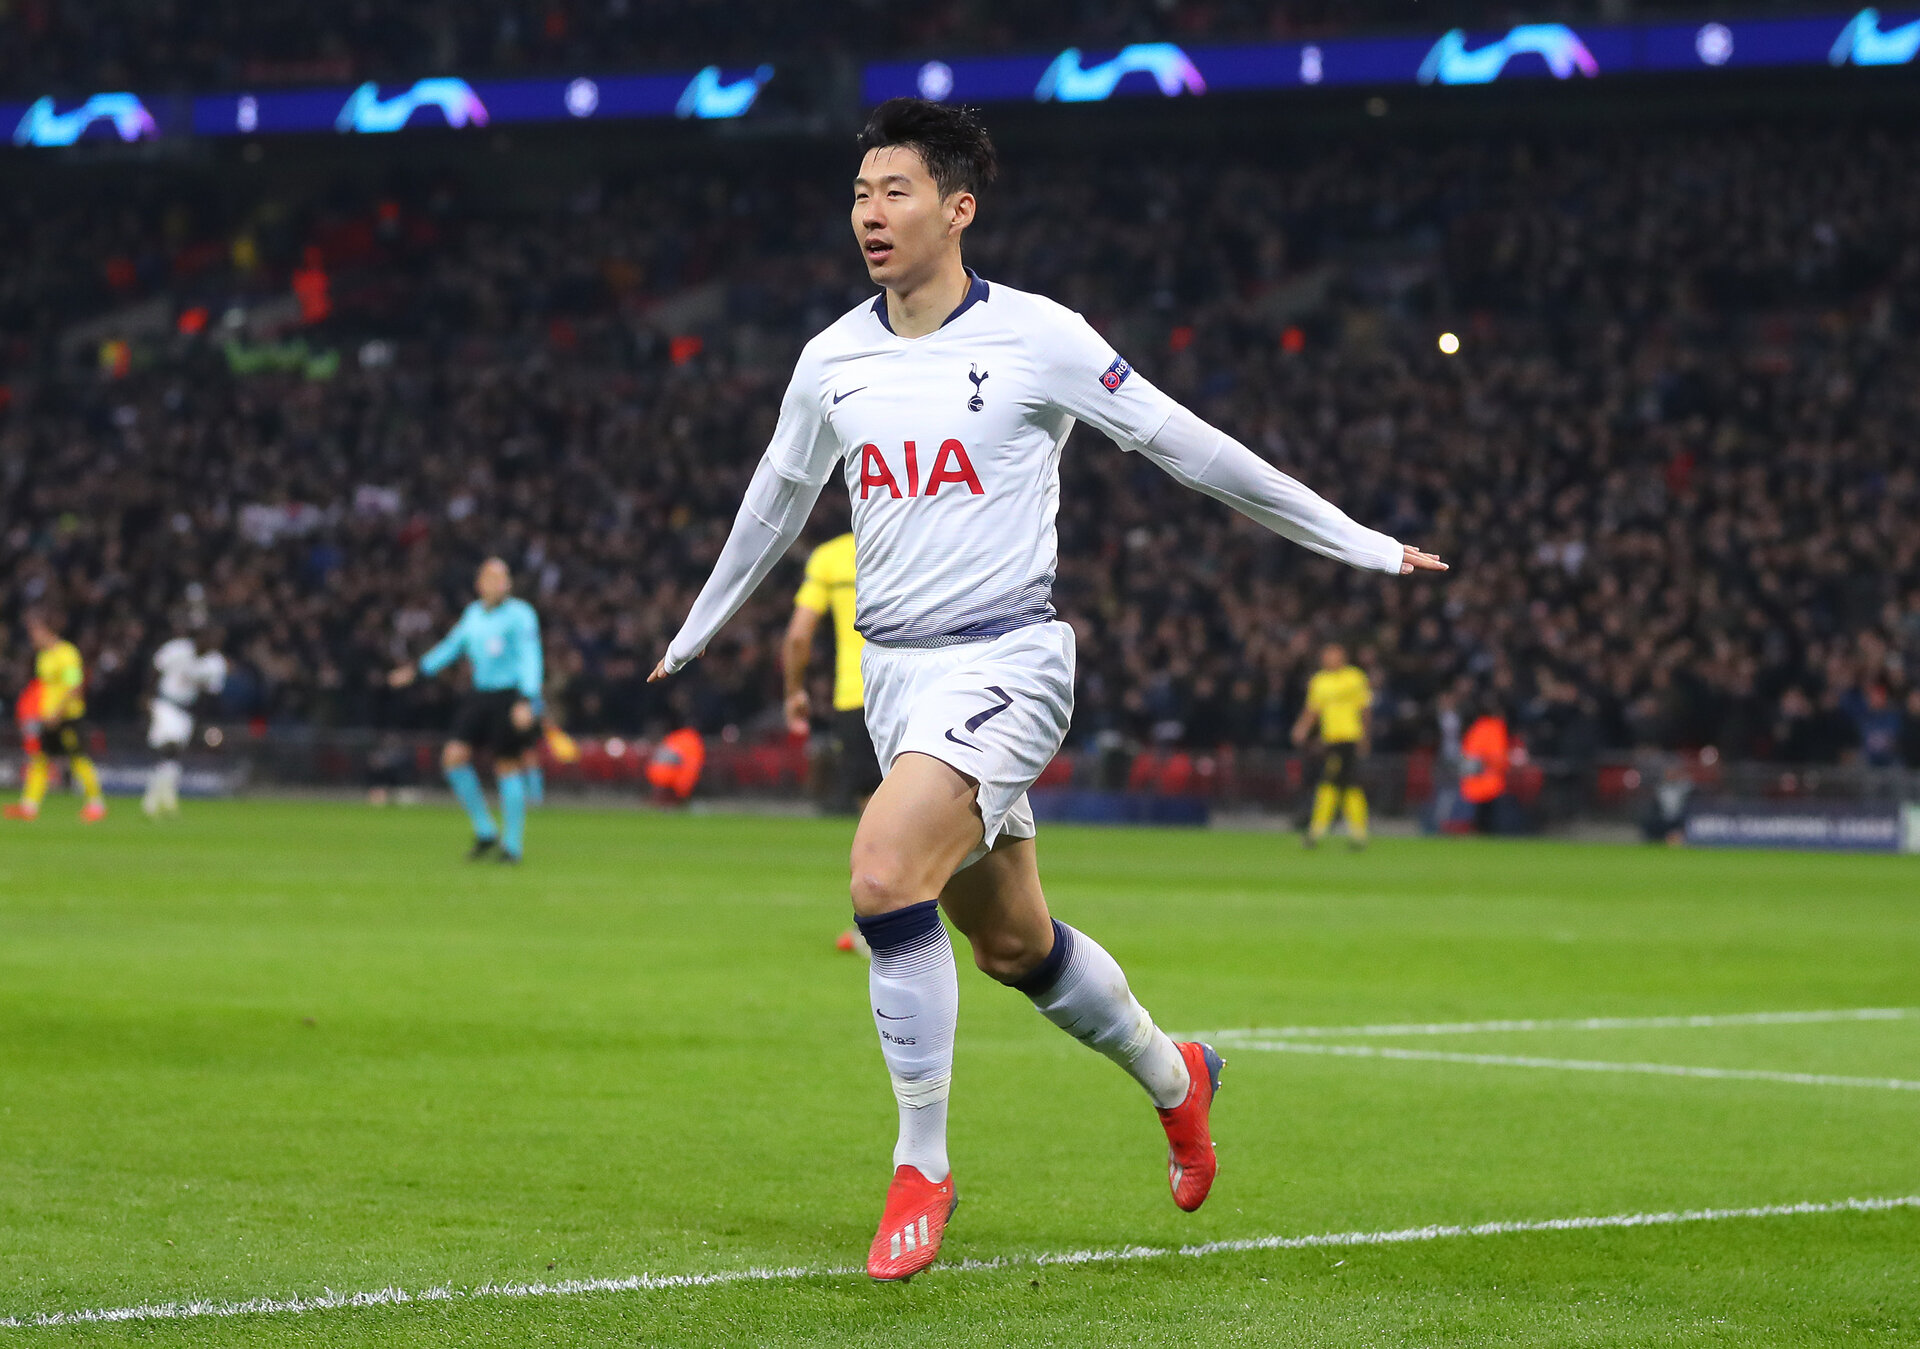 LONDON, ENGLAND - FEBRUARY 13: Son Heung-Min of Tottenham celebrates scoring to make it 1-0 during the UEFA Champions League Round of 16 First Leg match between Tottenham Hotspur and Borussia Dortmund at Wembley Stadium on February 13, 2019 in London, England. (Photo by Catherine Ivill/Getty Images)